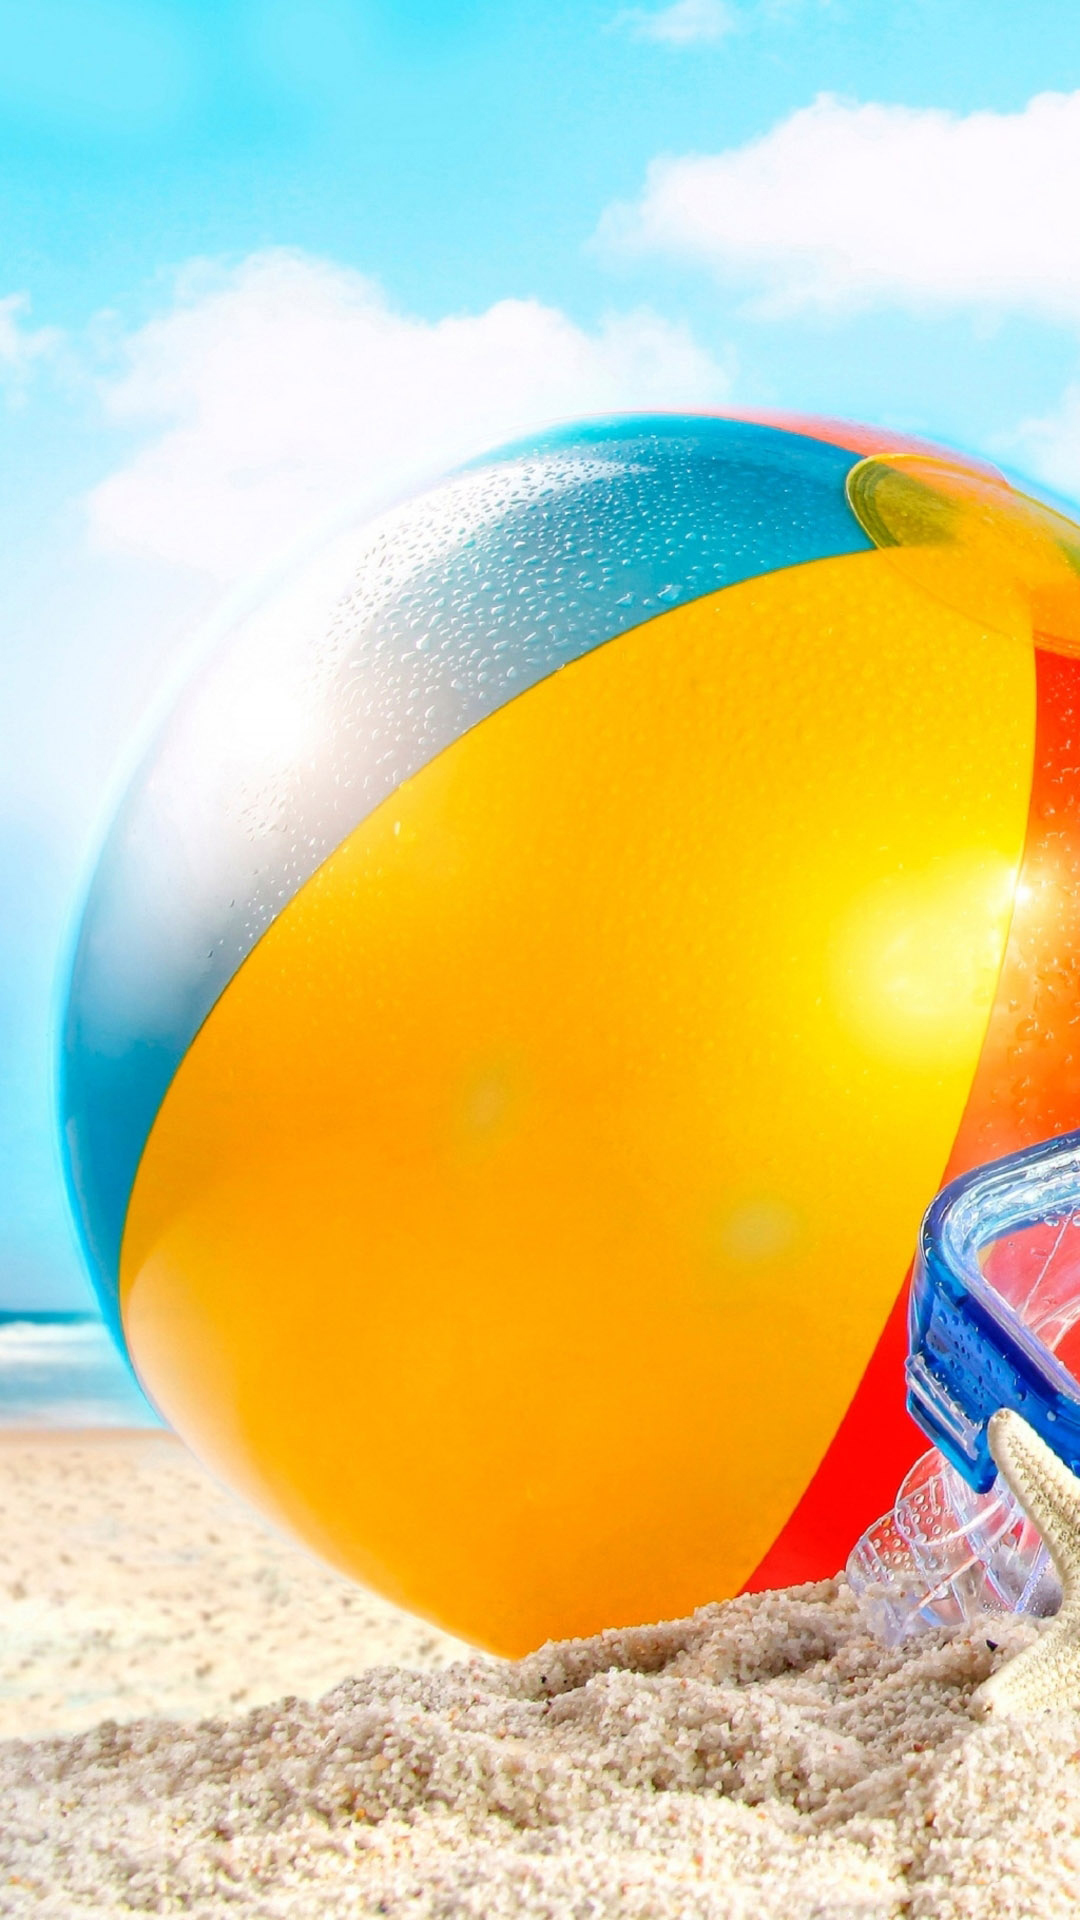 Free Download Beachball In Sand Summer Android Wallpaper